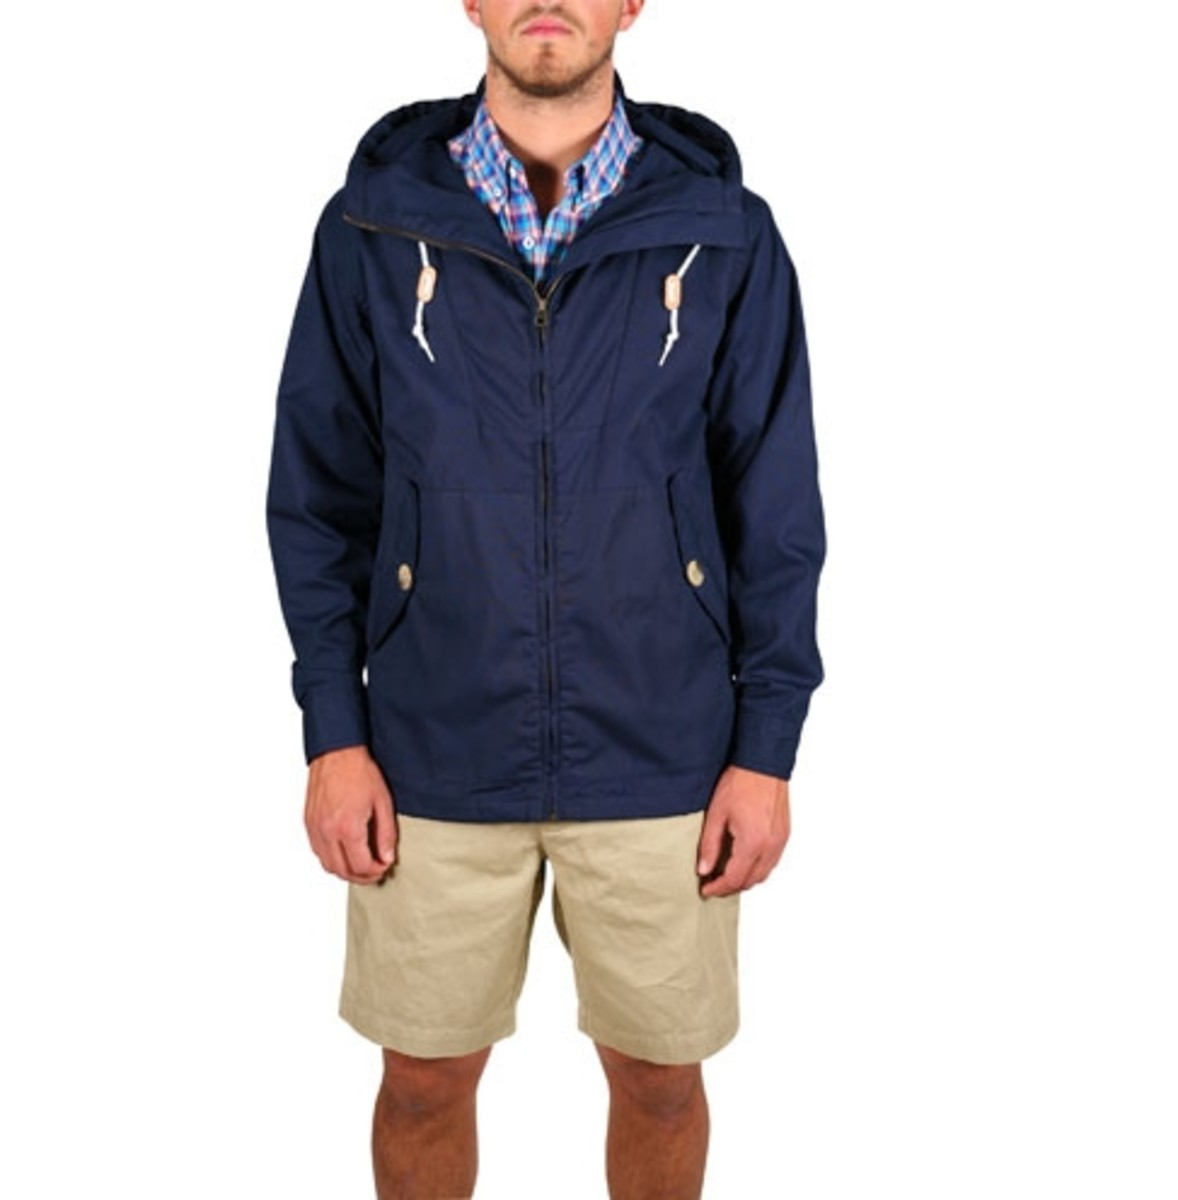 Penfield SS2011 Jackets 36